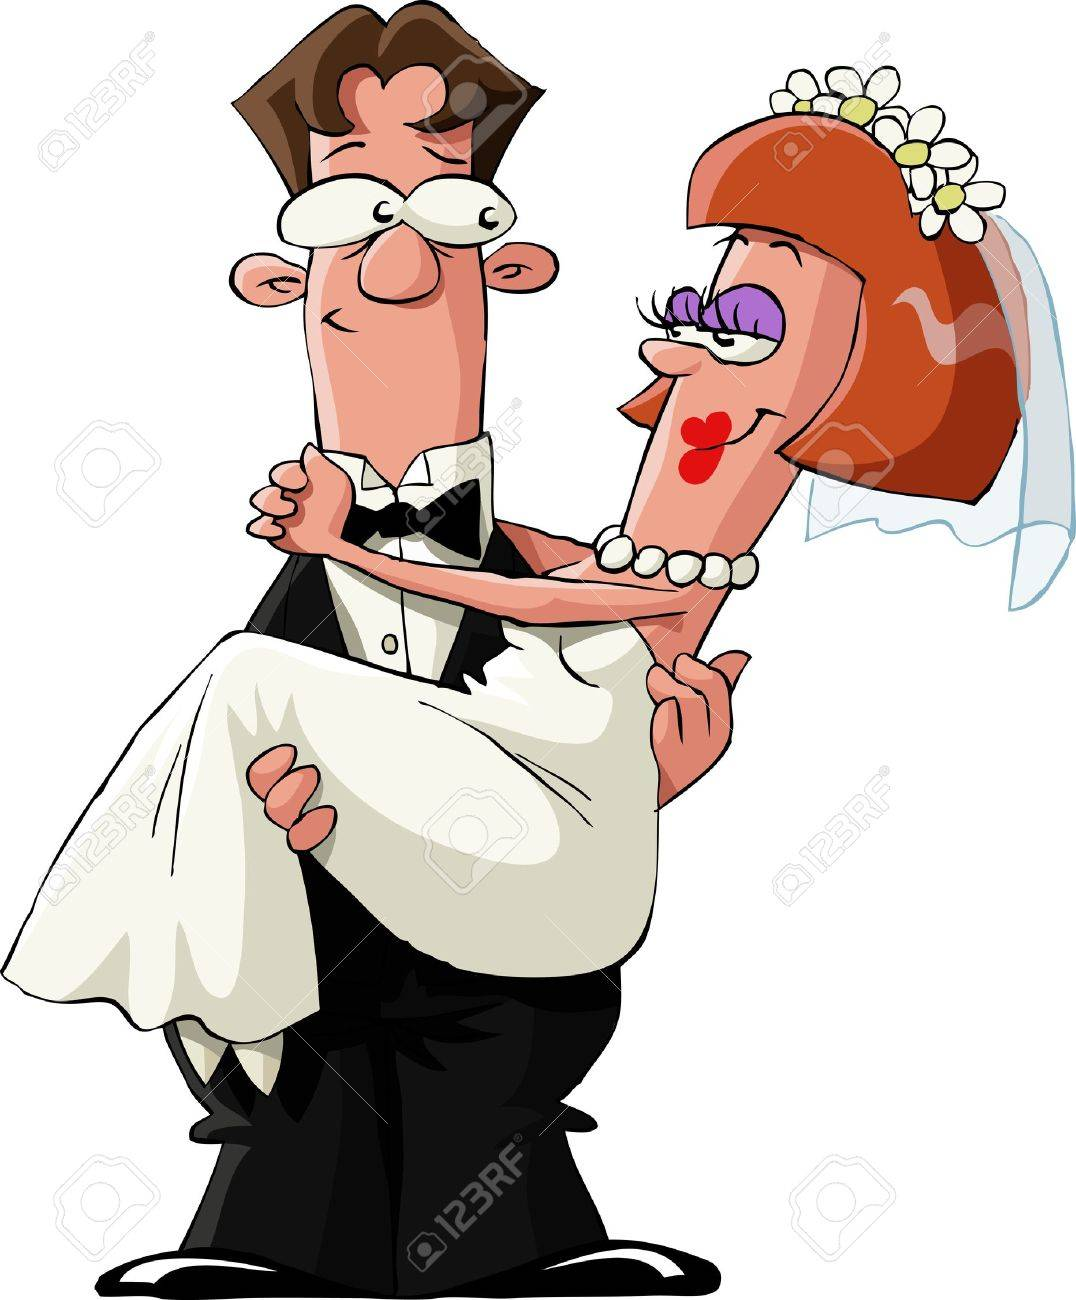 Married to a white background, illustration - 10686314